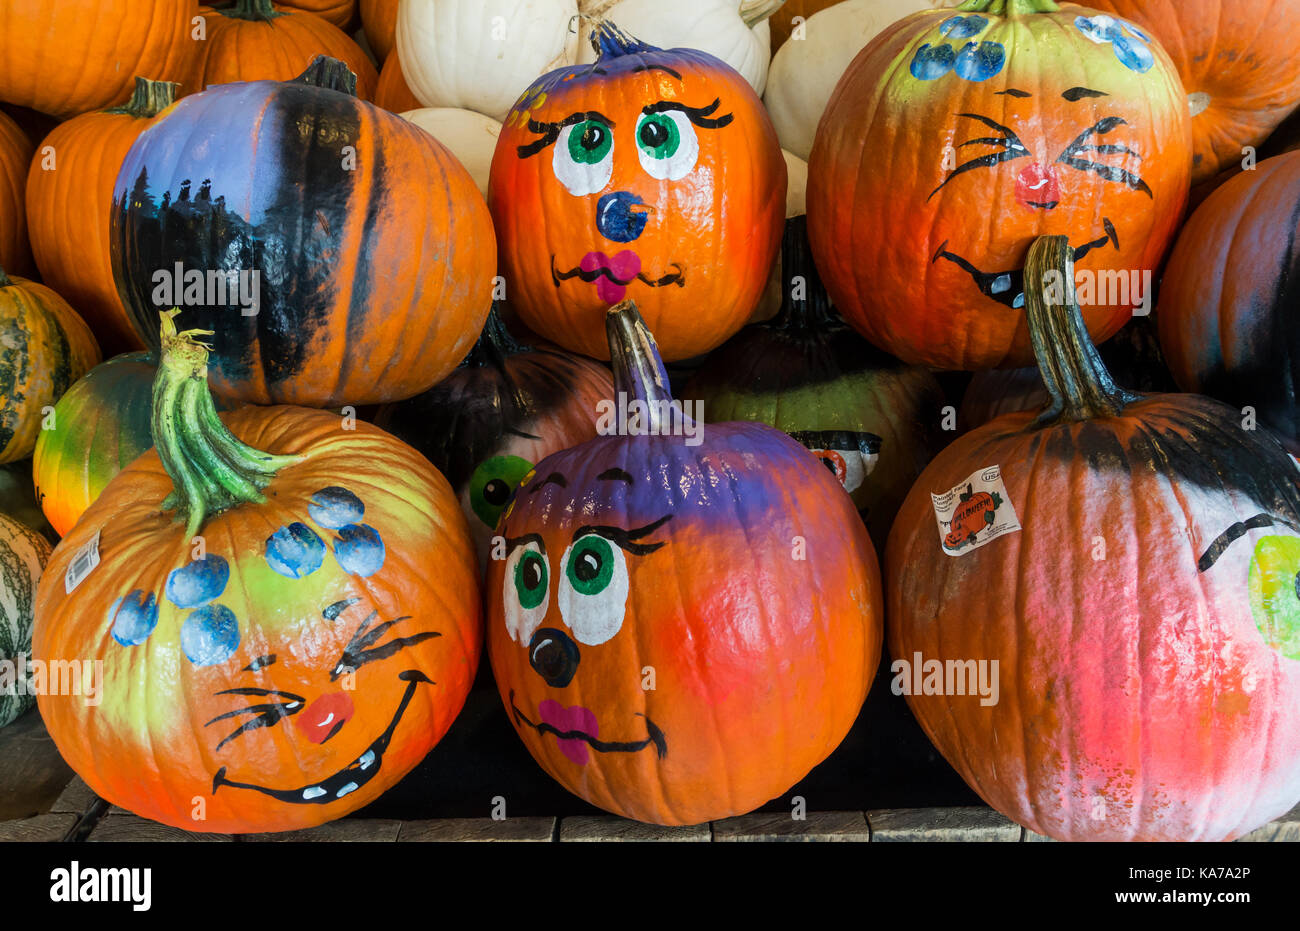 Painted Pumpkin Faces High Resolution Stock Photography And Images Alamy